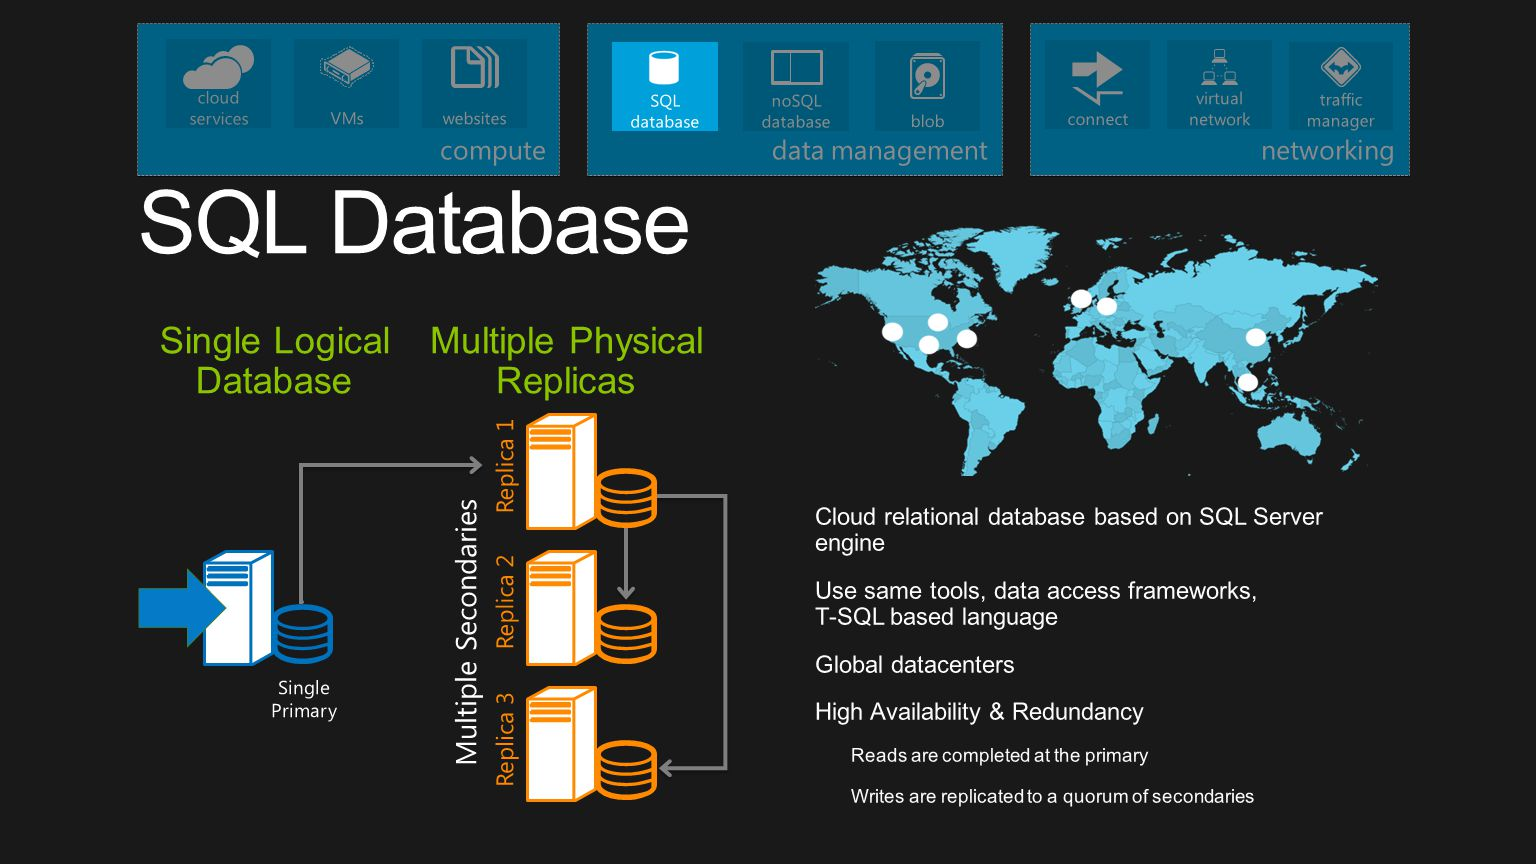 SQL Database Single Logical Database Multiple Physical Replicas